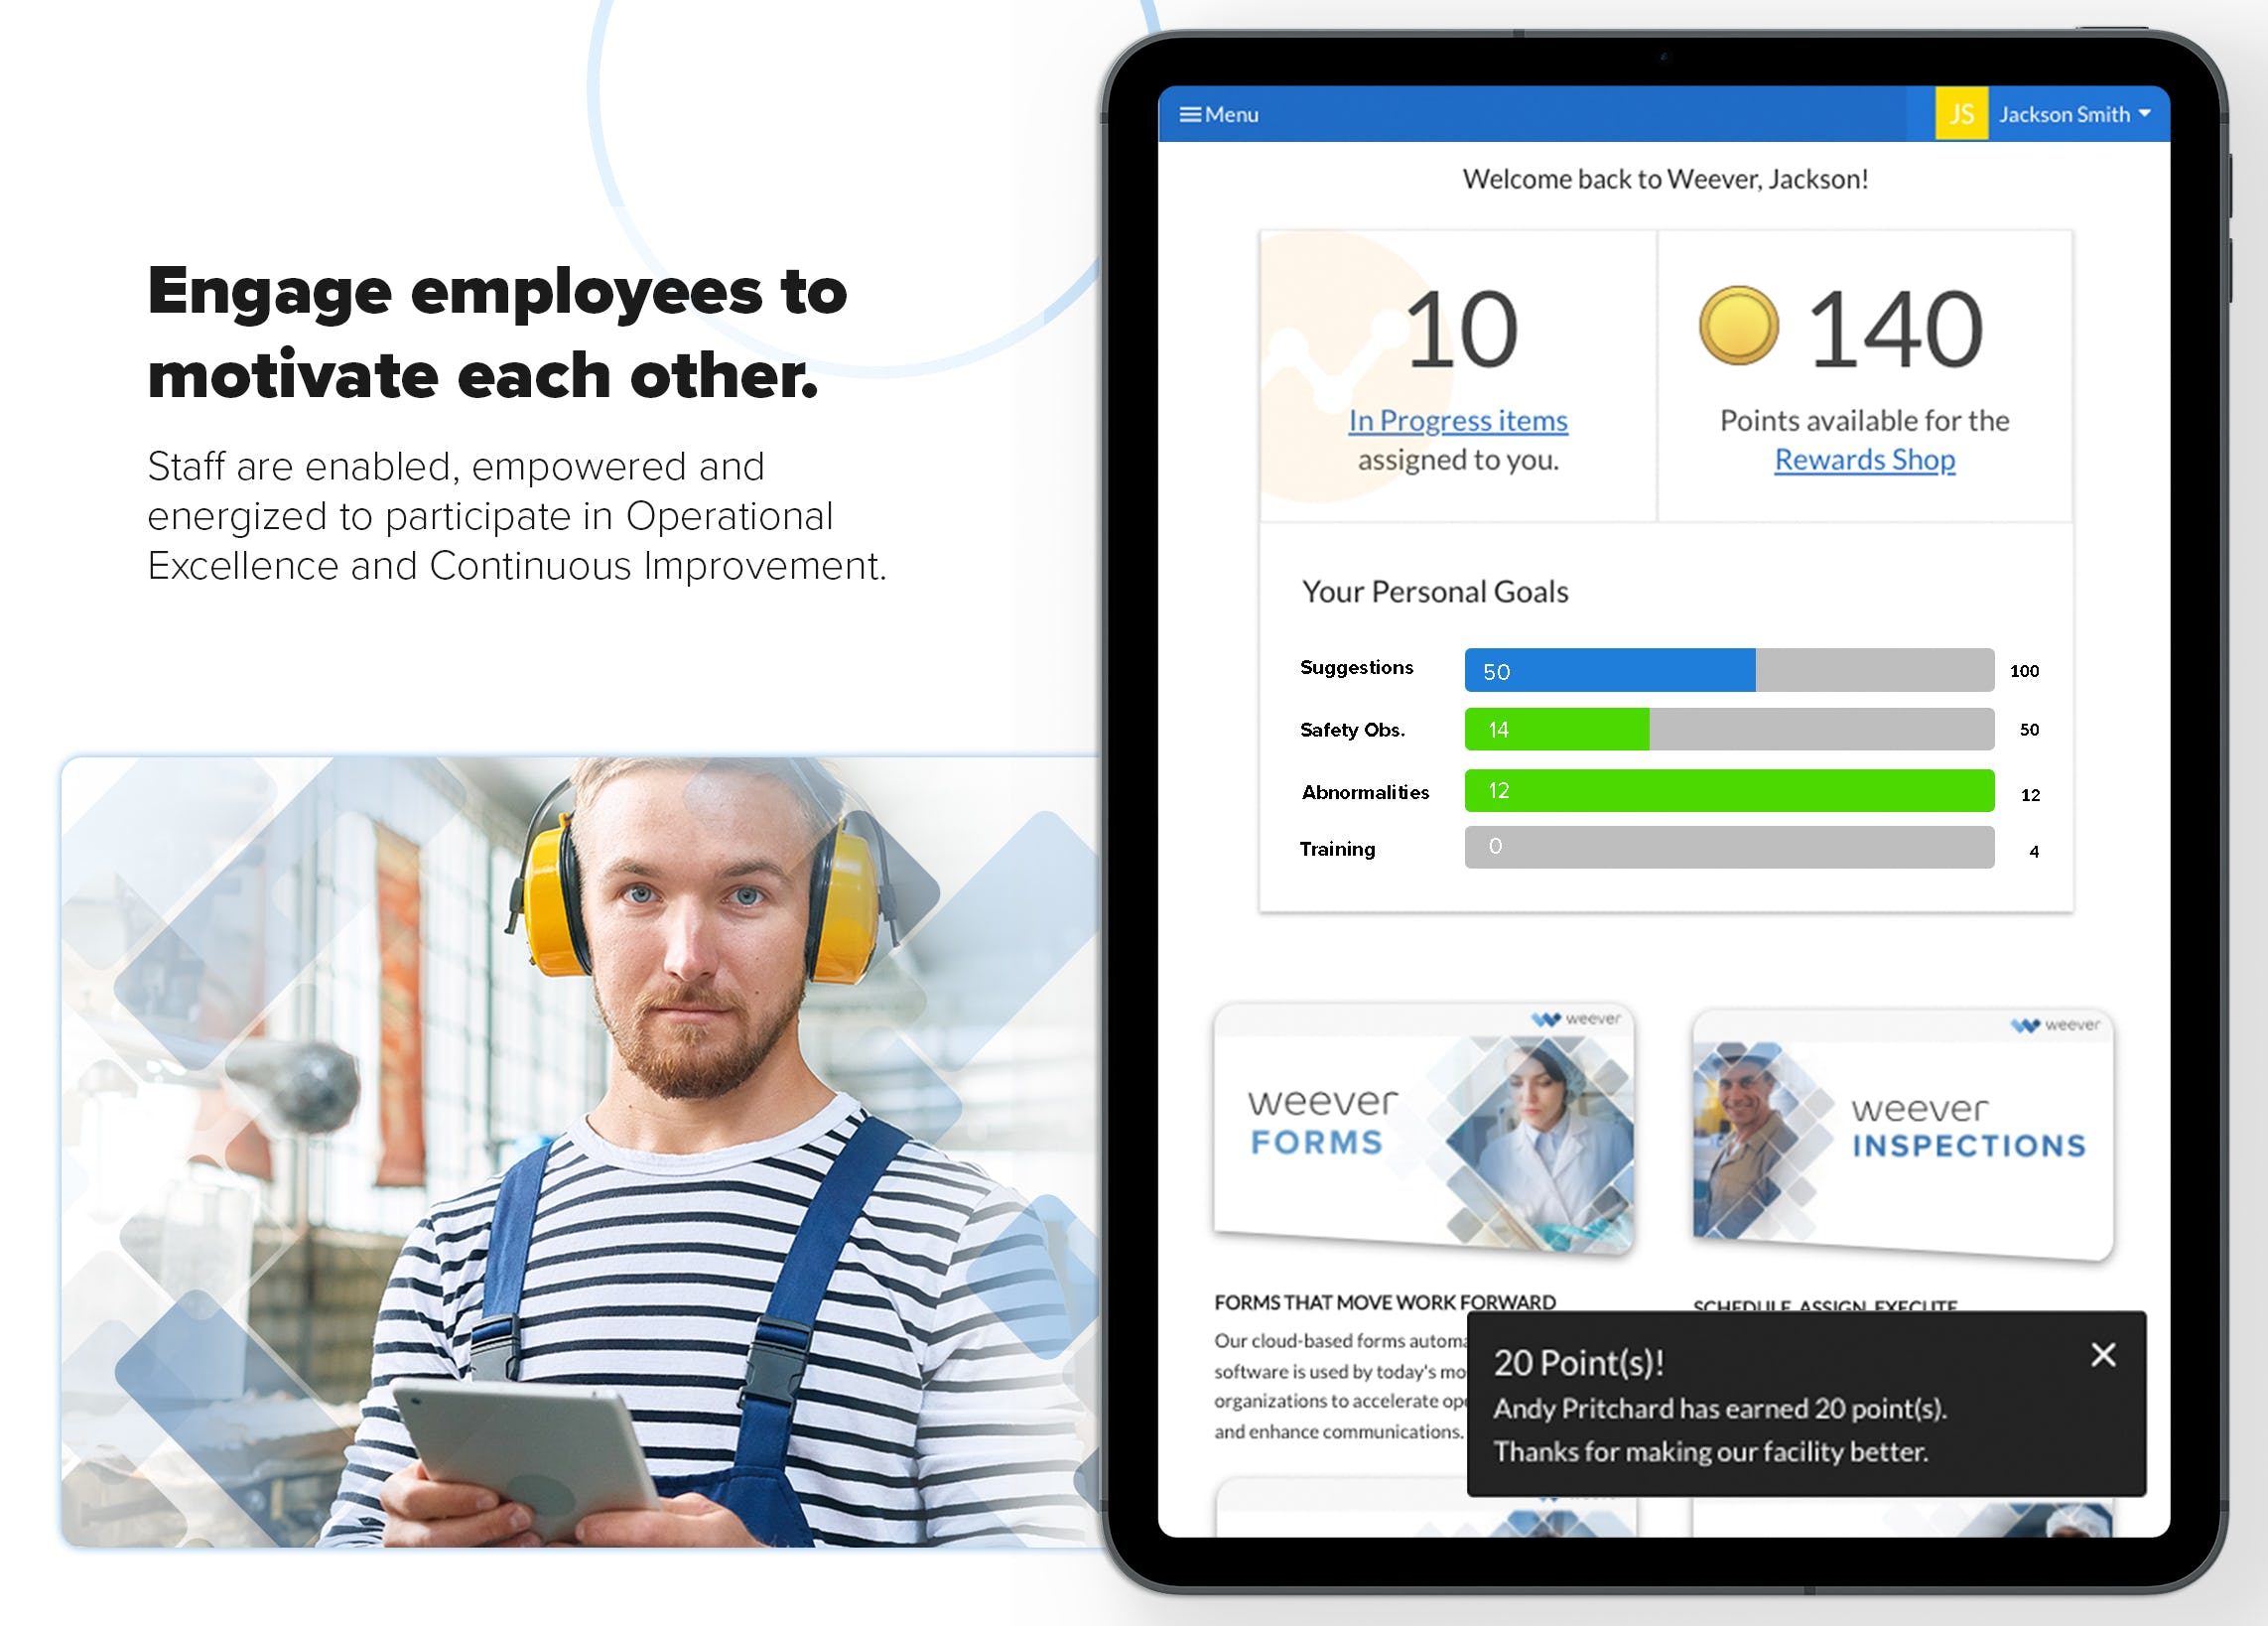 Engage Employees to motivate each other.  Staff are enabled, empowered and energized to participate in Operational Excellence and Continuous Improvement.